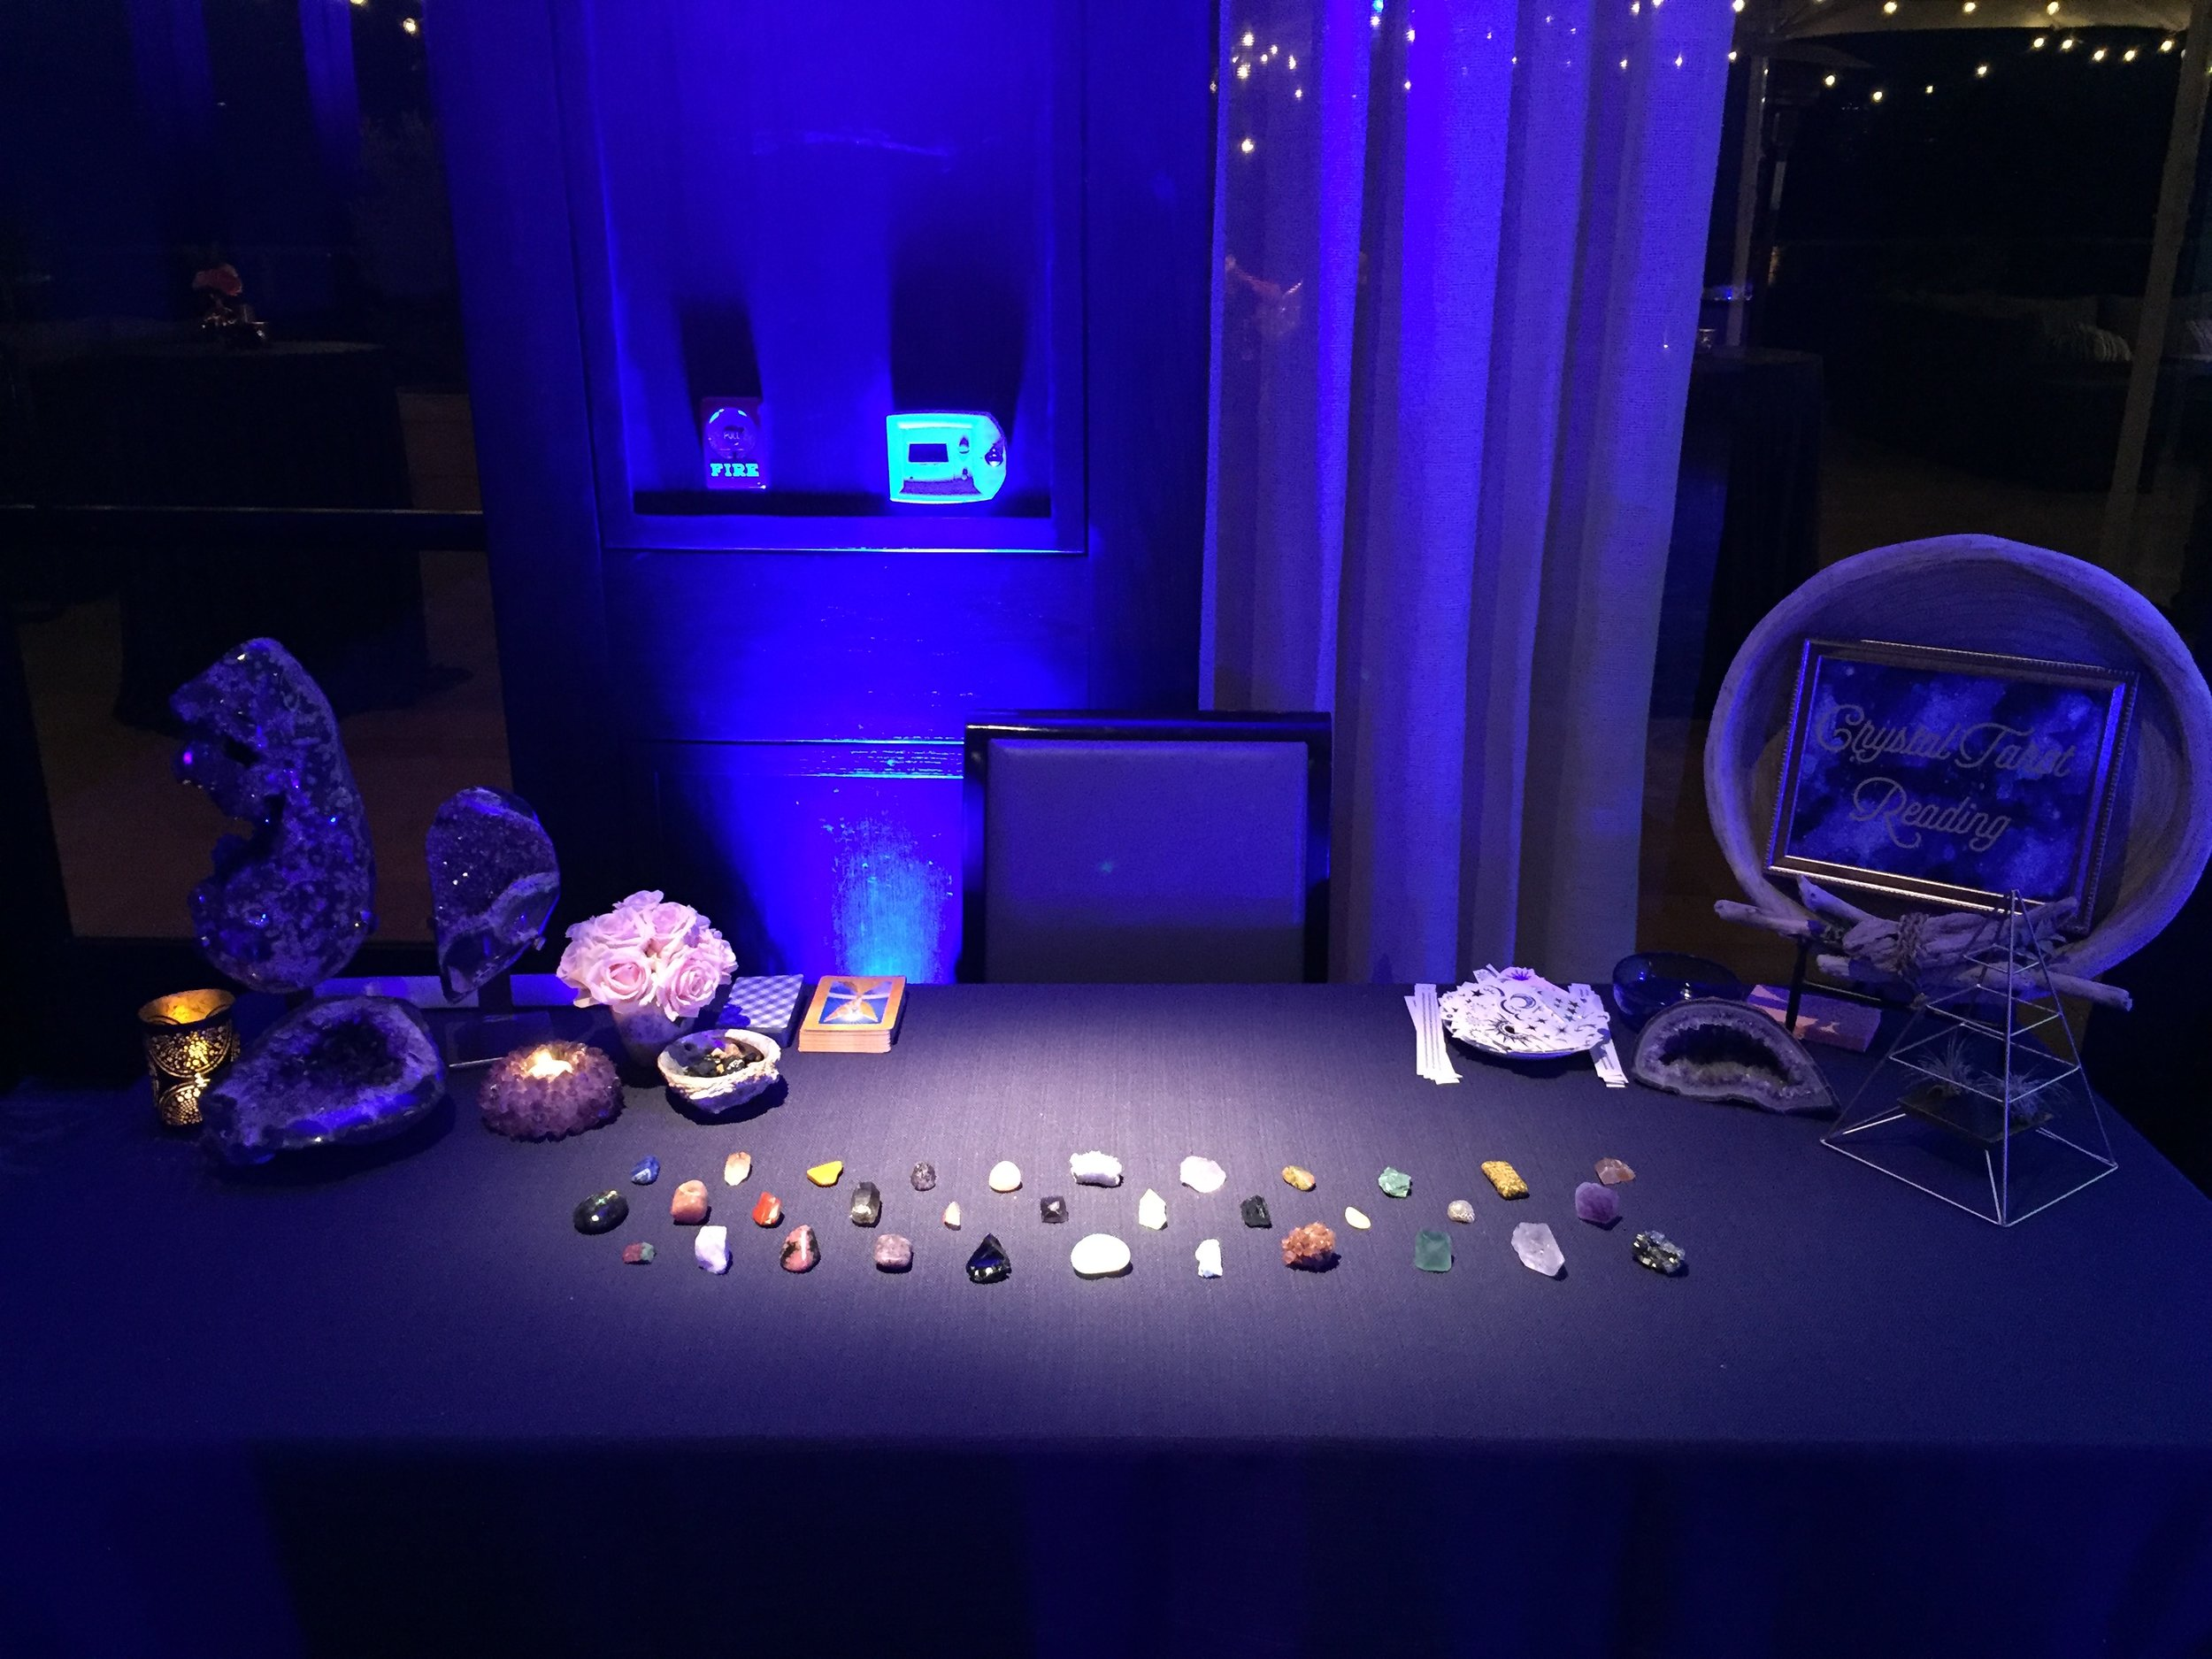 Sacha's Bat Mitzvah at the Brentwood Country Club